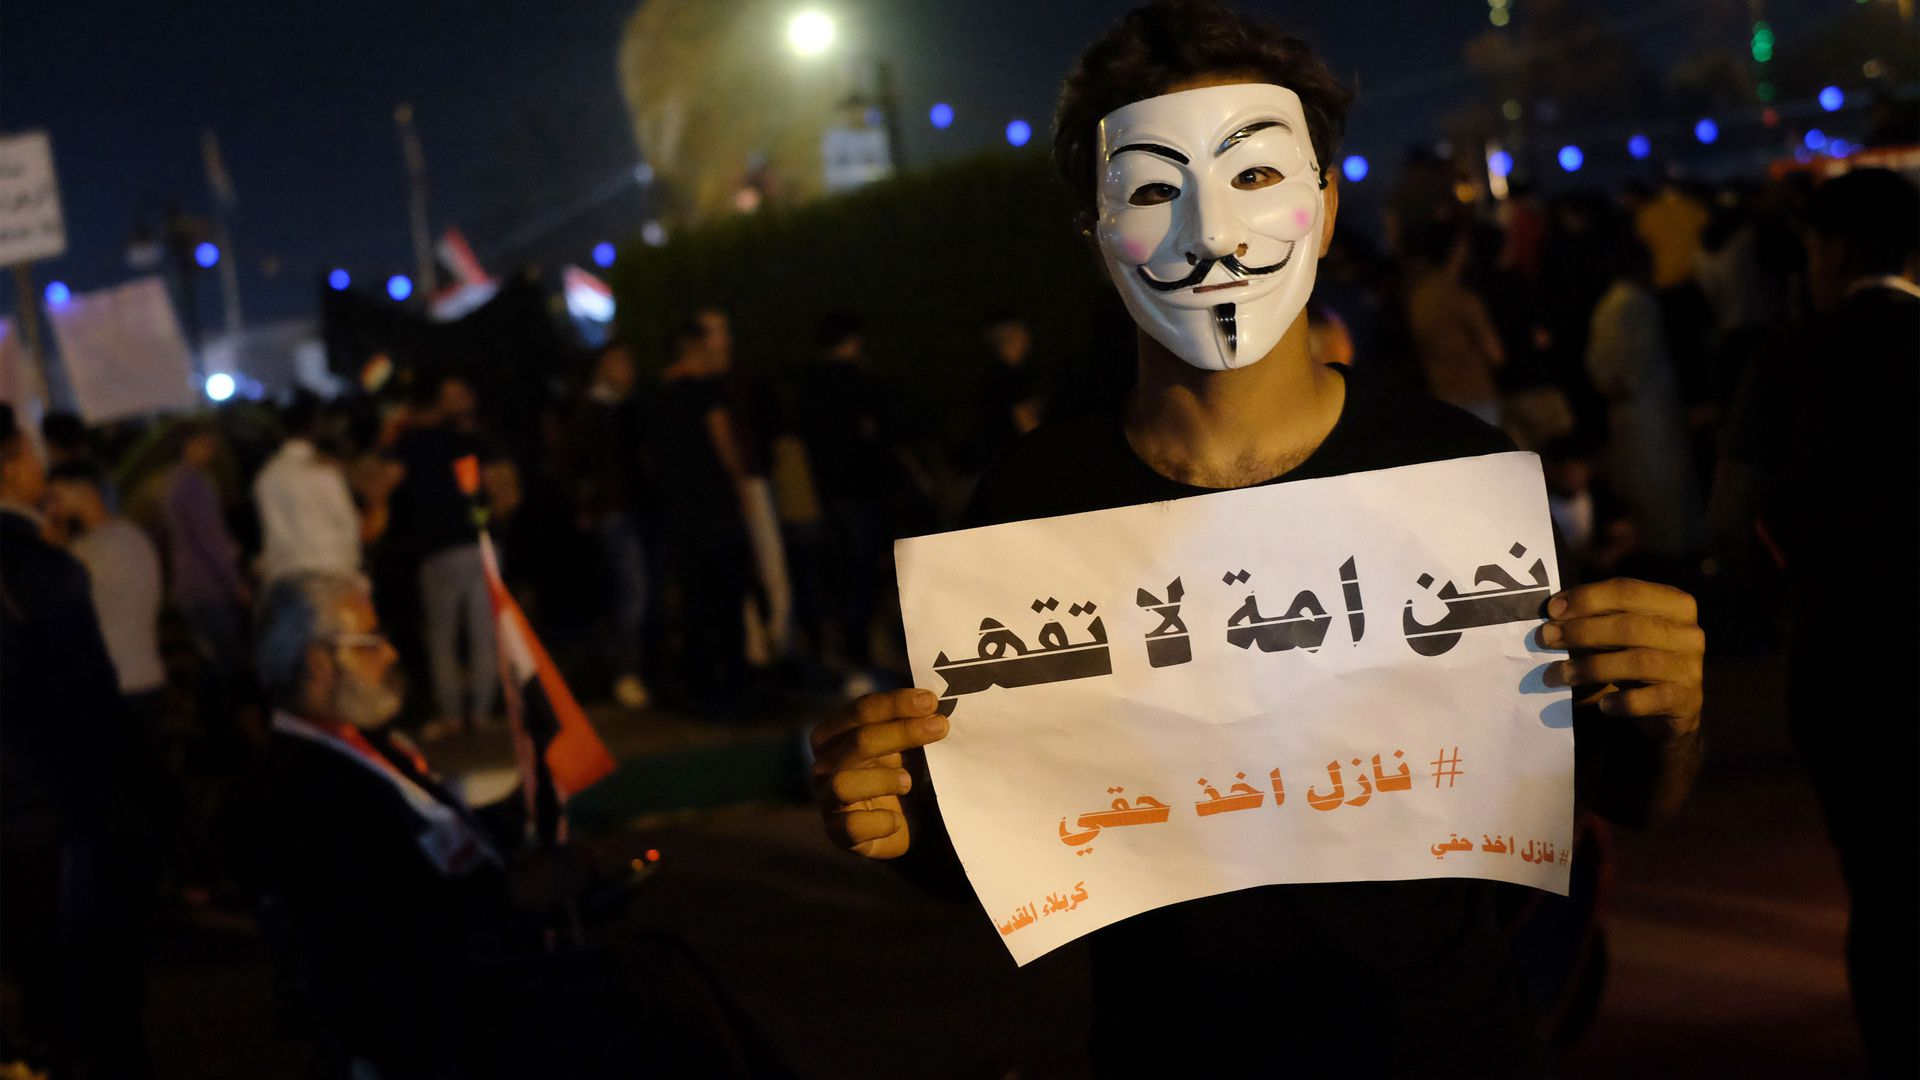 An Iraqi protester holds a placard during ongoing anti-government demonstrations in the Shiite shrine city of Karbala, south of Iraq's capital Baghdad, on November 1